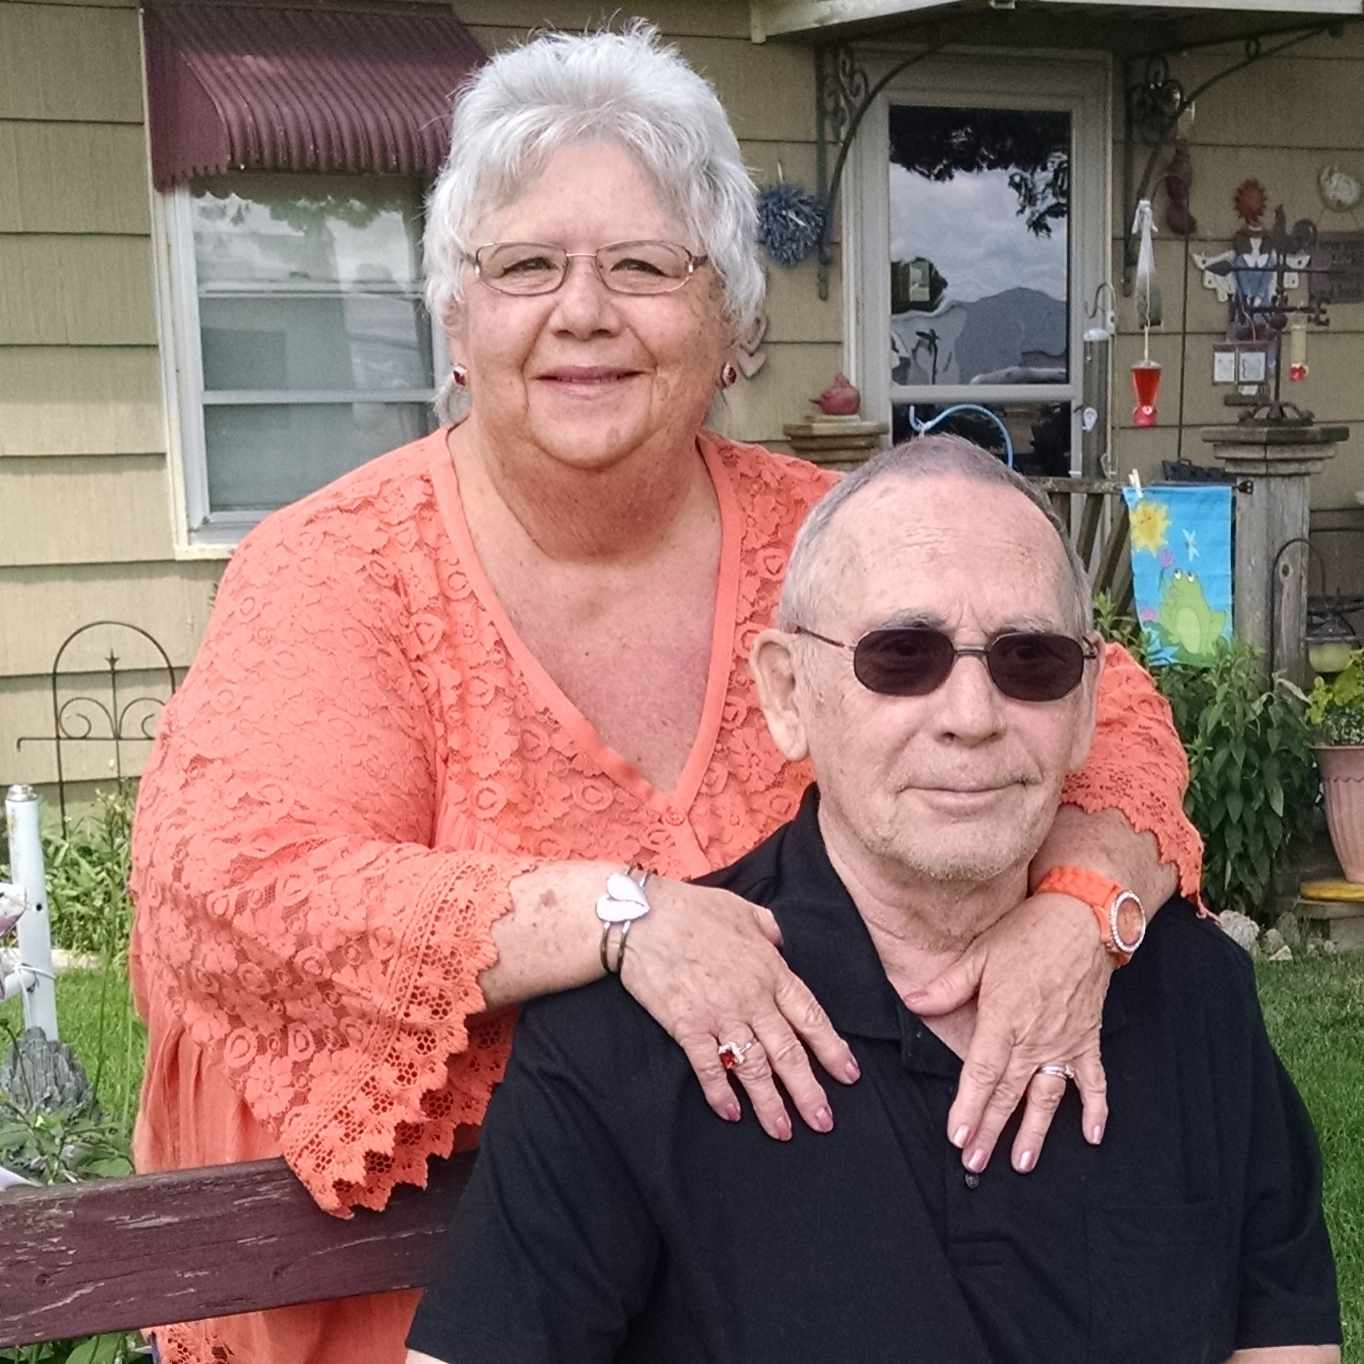 aortic aneurysm patient pictured with his wife outside their home